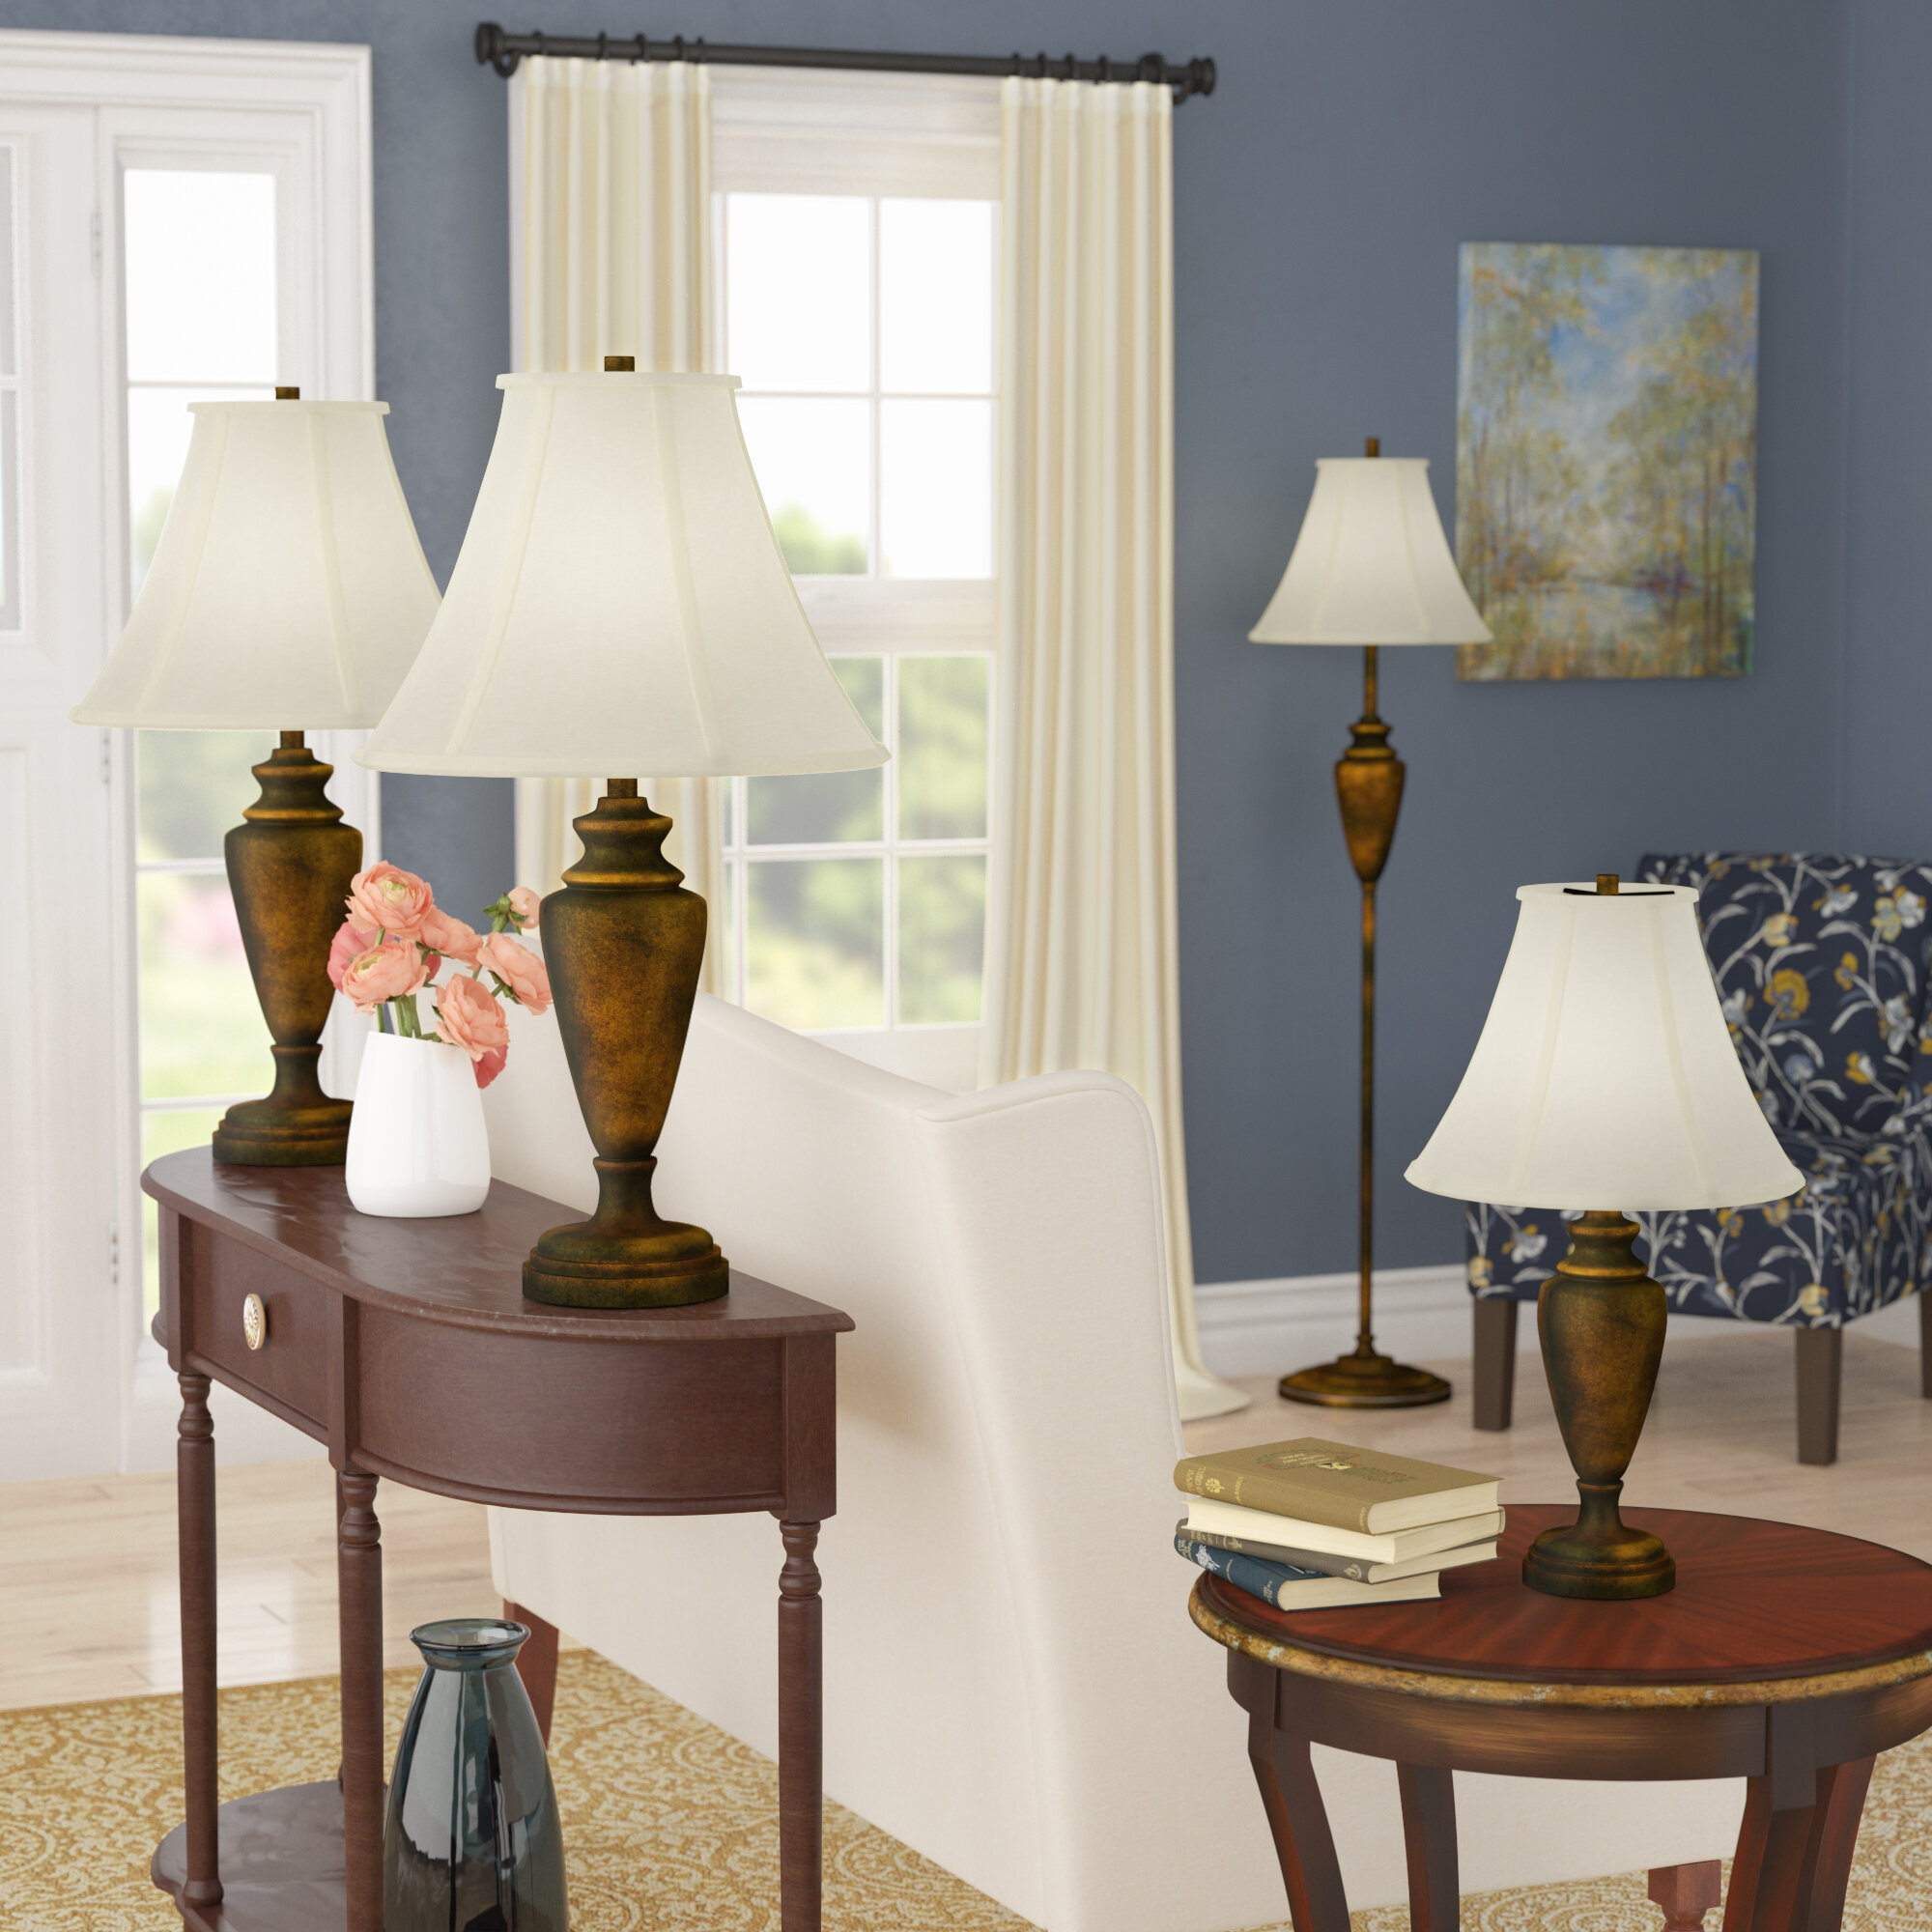 & Alcott Hill Paulson 4 Piece Table and Floor Lamp Set u0026 Reviews | Wayfair